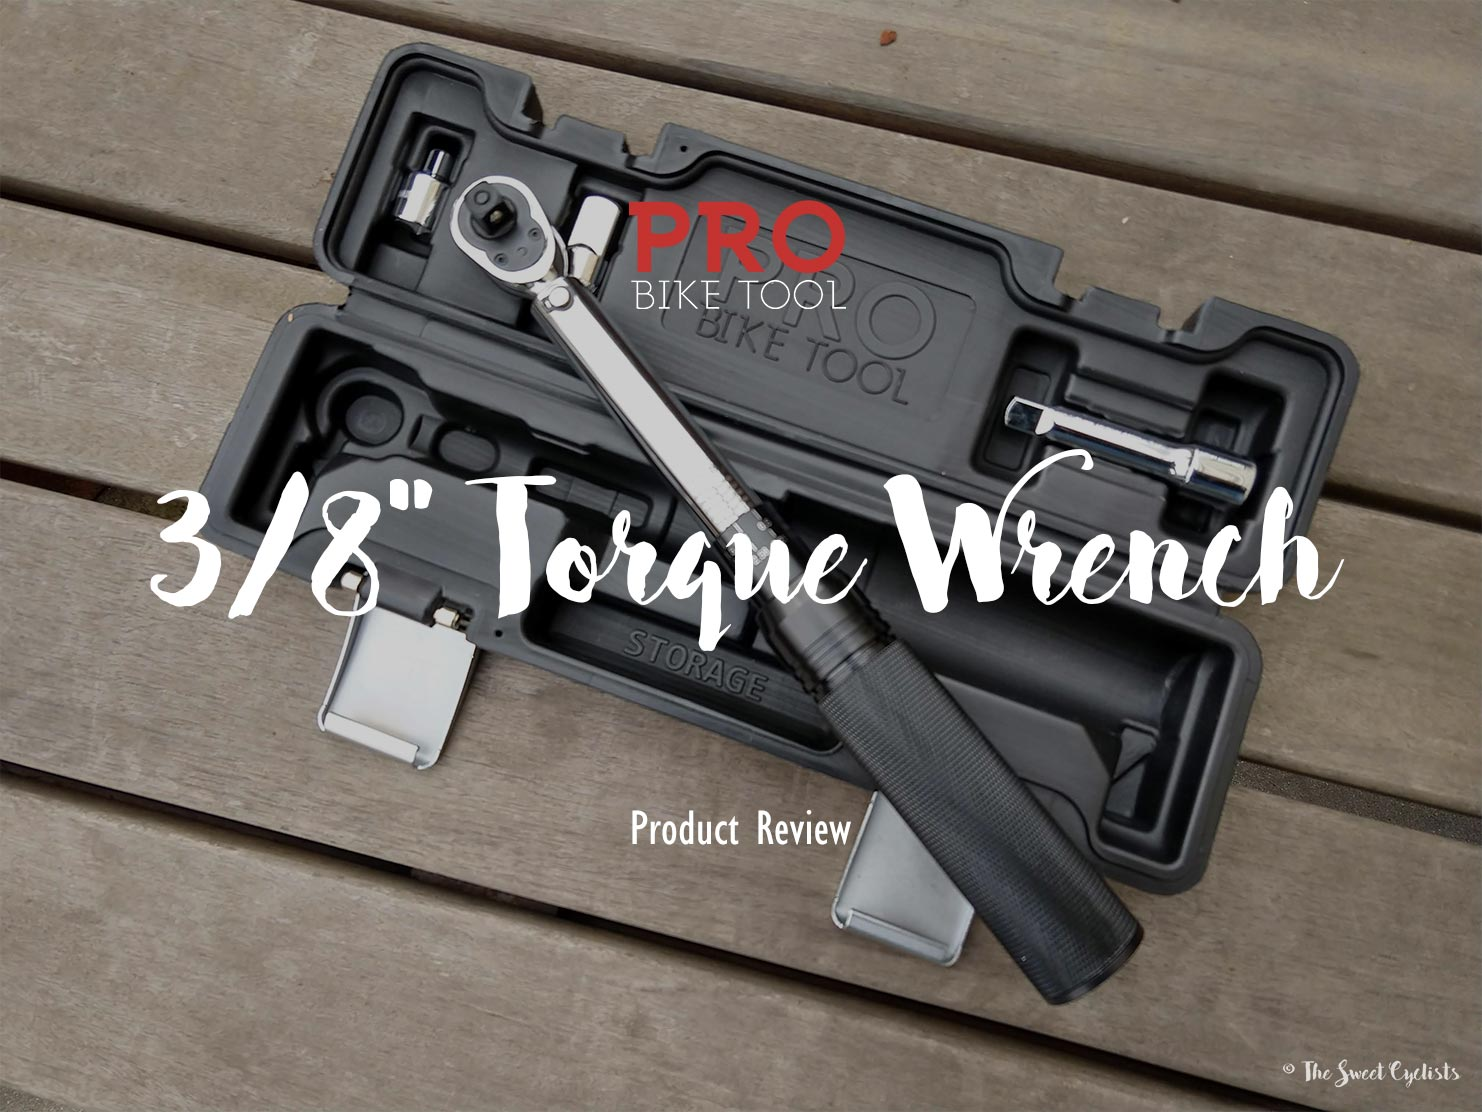 Pro Bike Tool's 10-60 N-m Torque Wrench